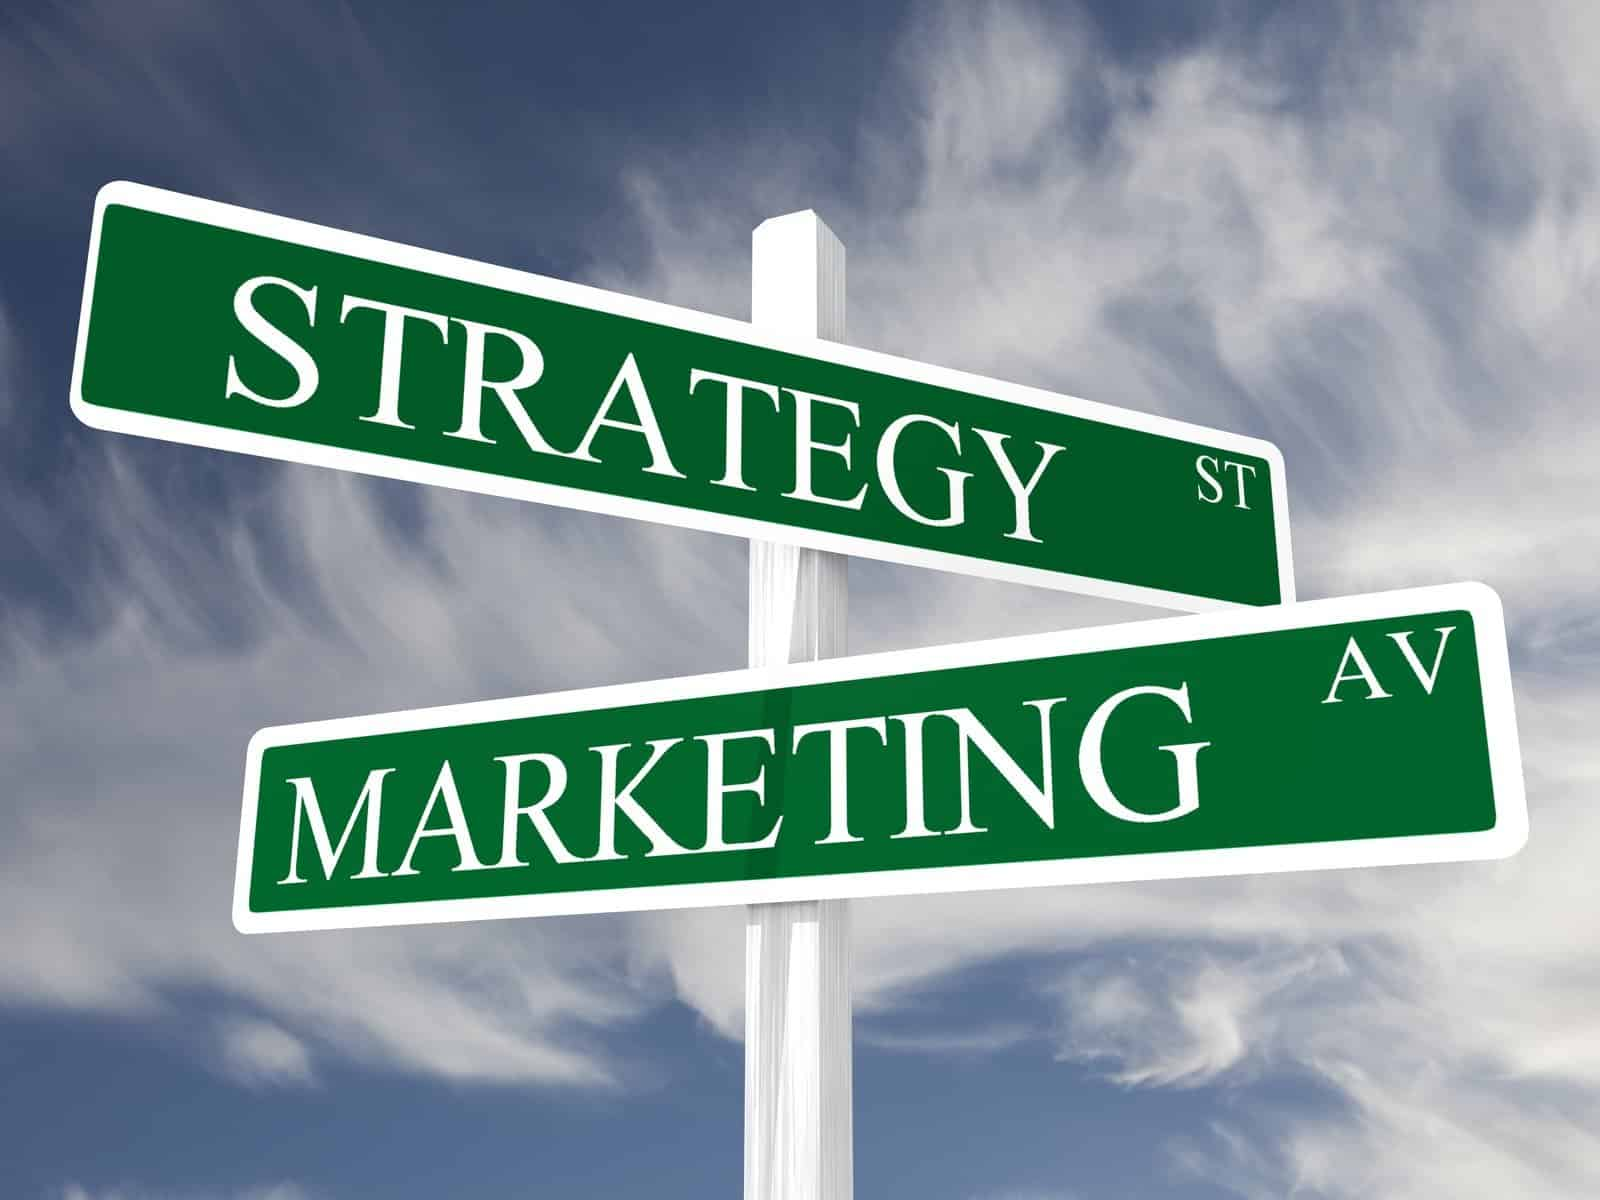 Marijuana Marketing Strategies for Retailers. Streets signs saying strategy and marketing.